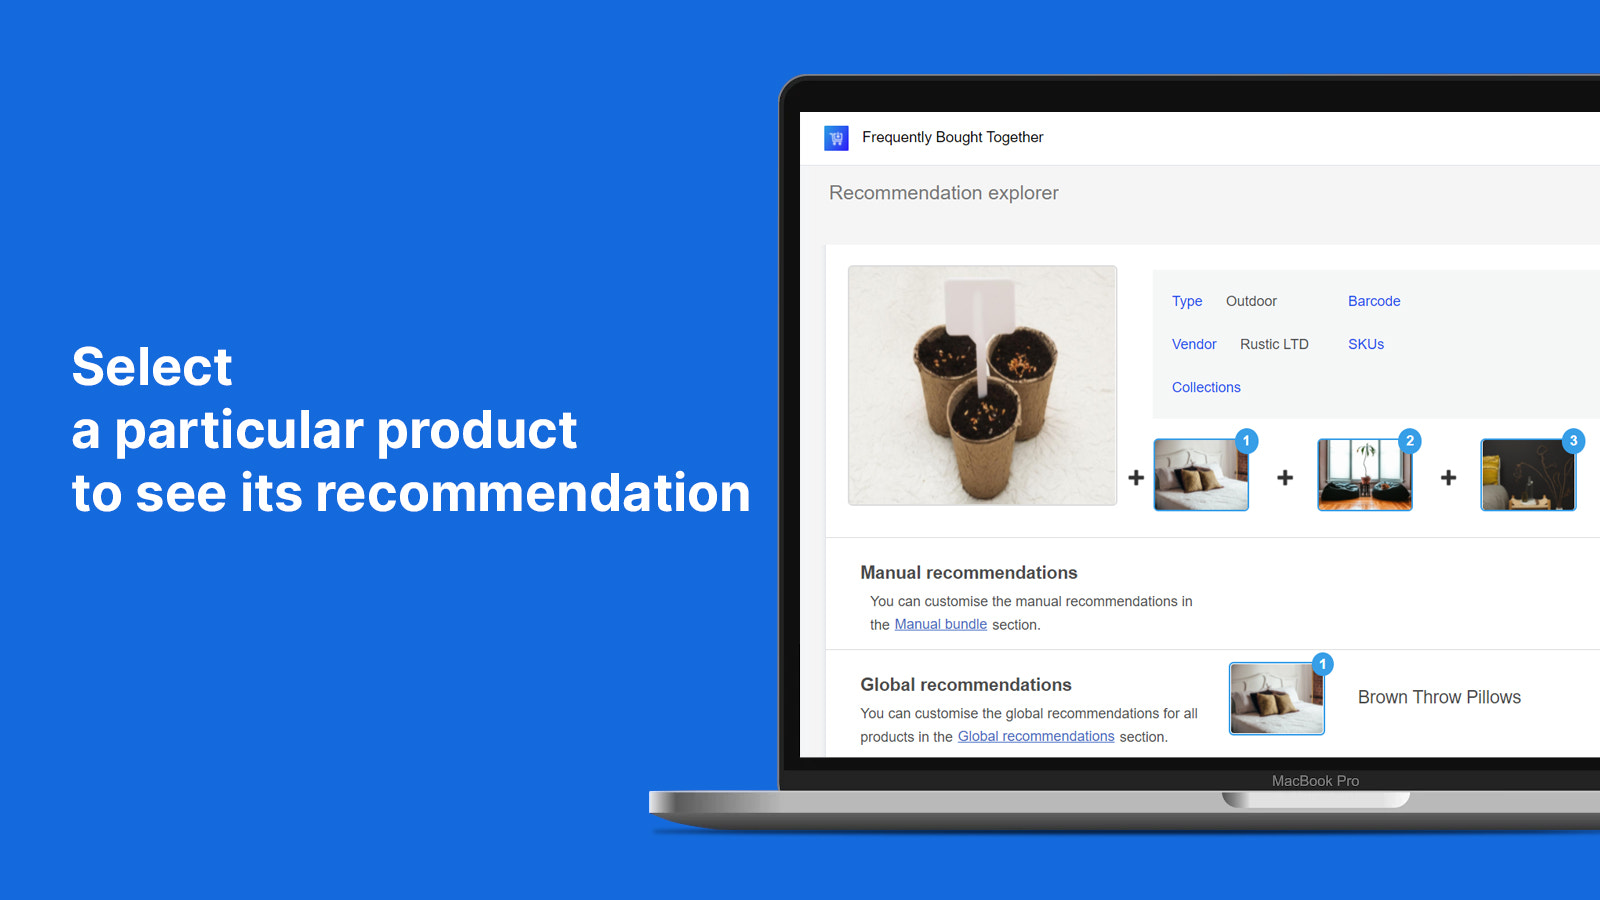 Select a product to see its recommendations